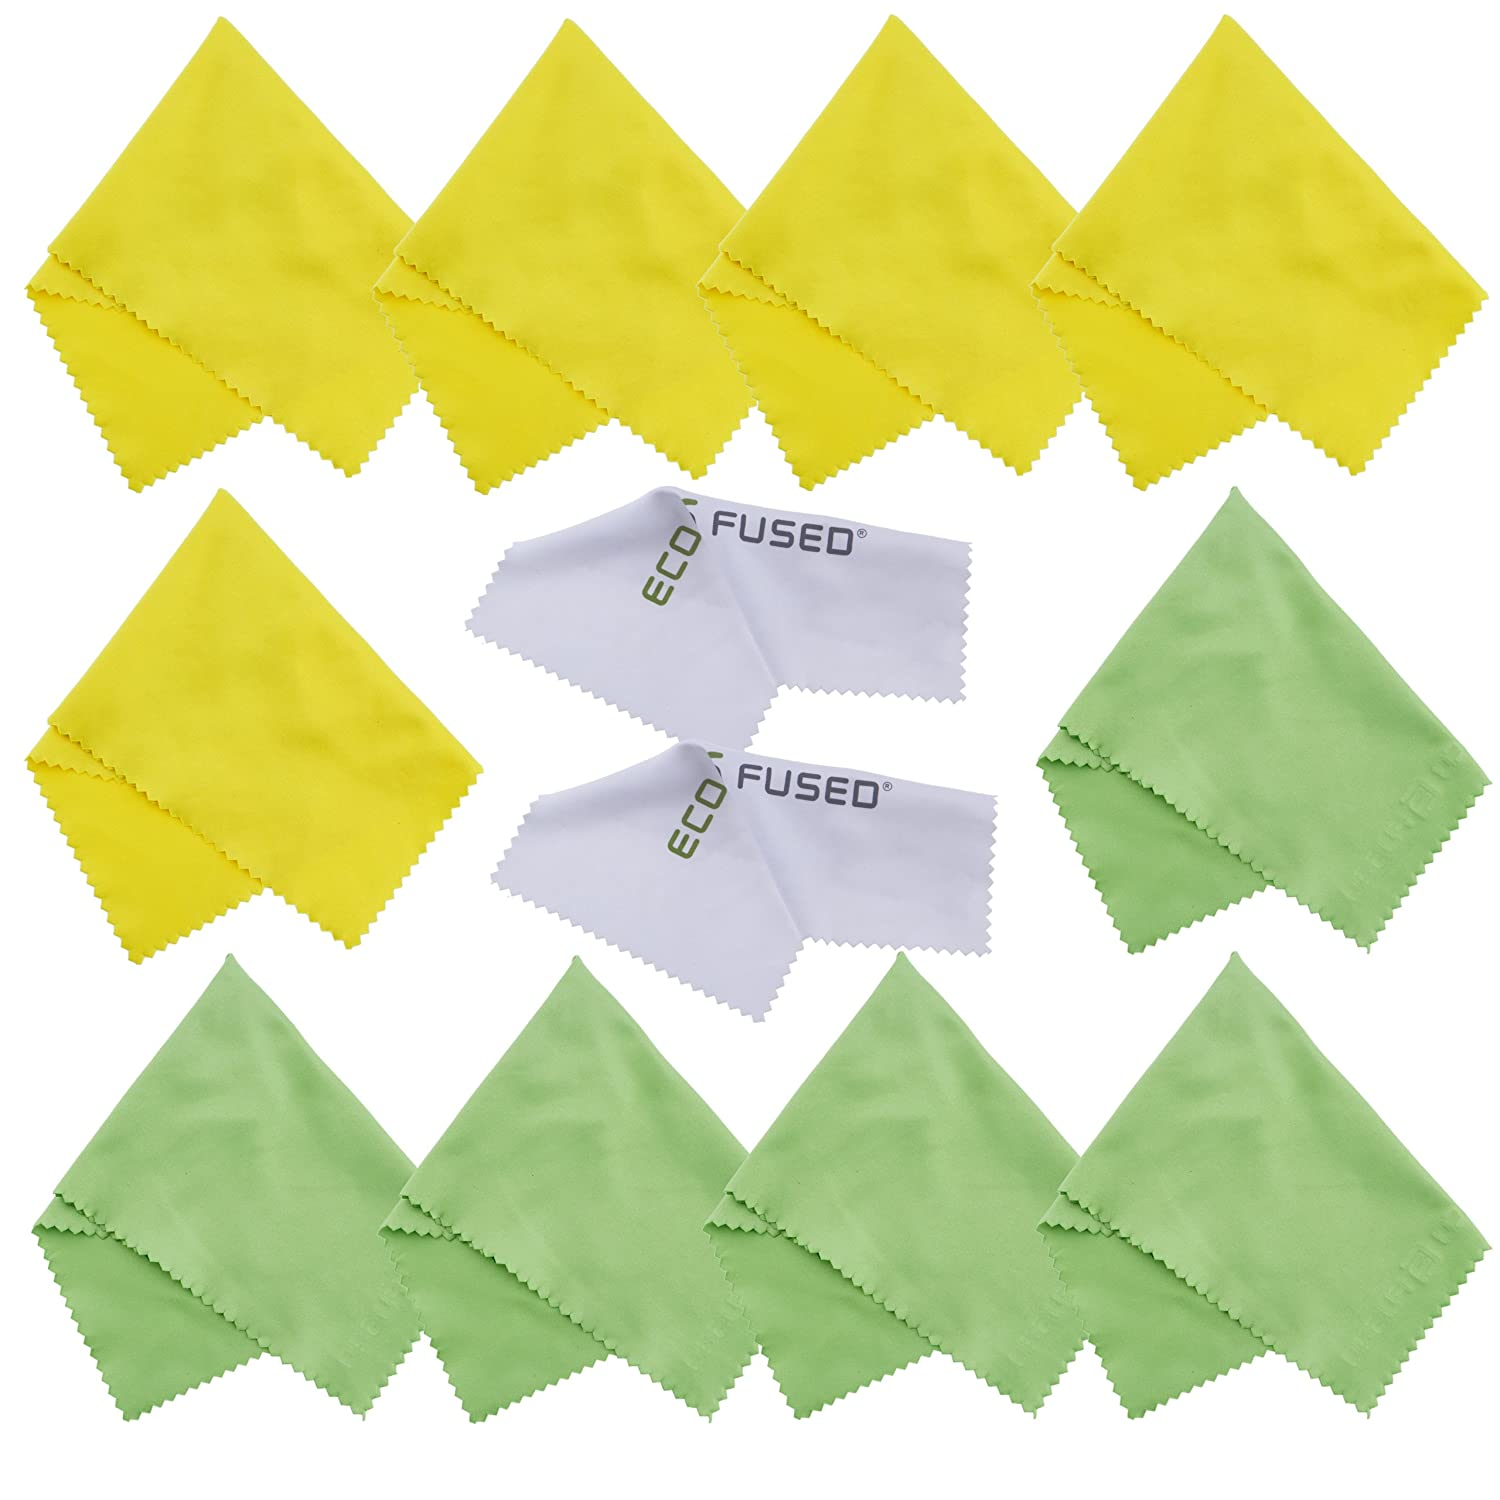 Microfiber Cleaning Cloths - 10 Colorful Cloths and 2 White ECO-FUSED Cloths - Ideal for Cleaning Glasses, Spectacles, Camera Lenses, iPad, Tablets, Phones, iPhone, Android Phones, LCD Screens and Other Delicate Surfaces (Yellow/Green) … ECO-FUSED®